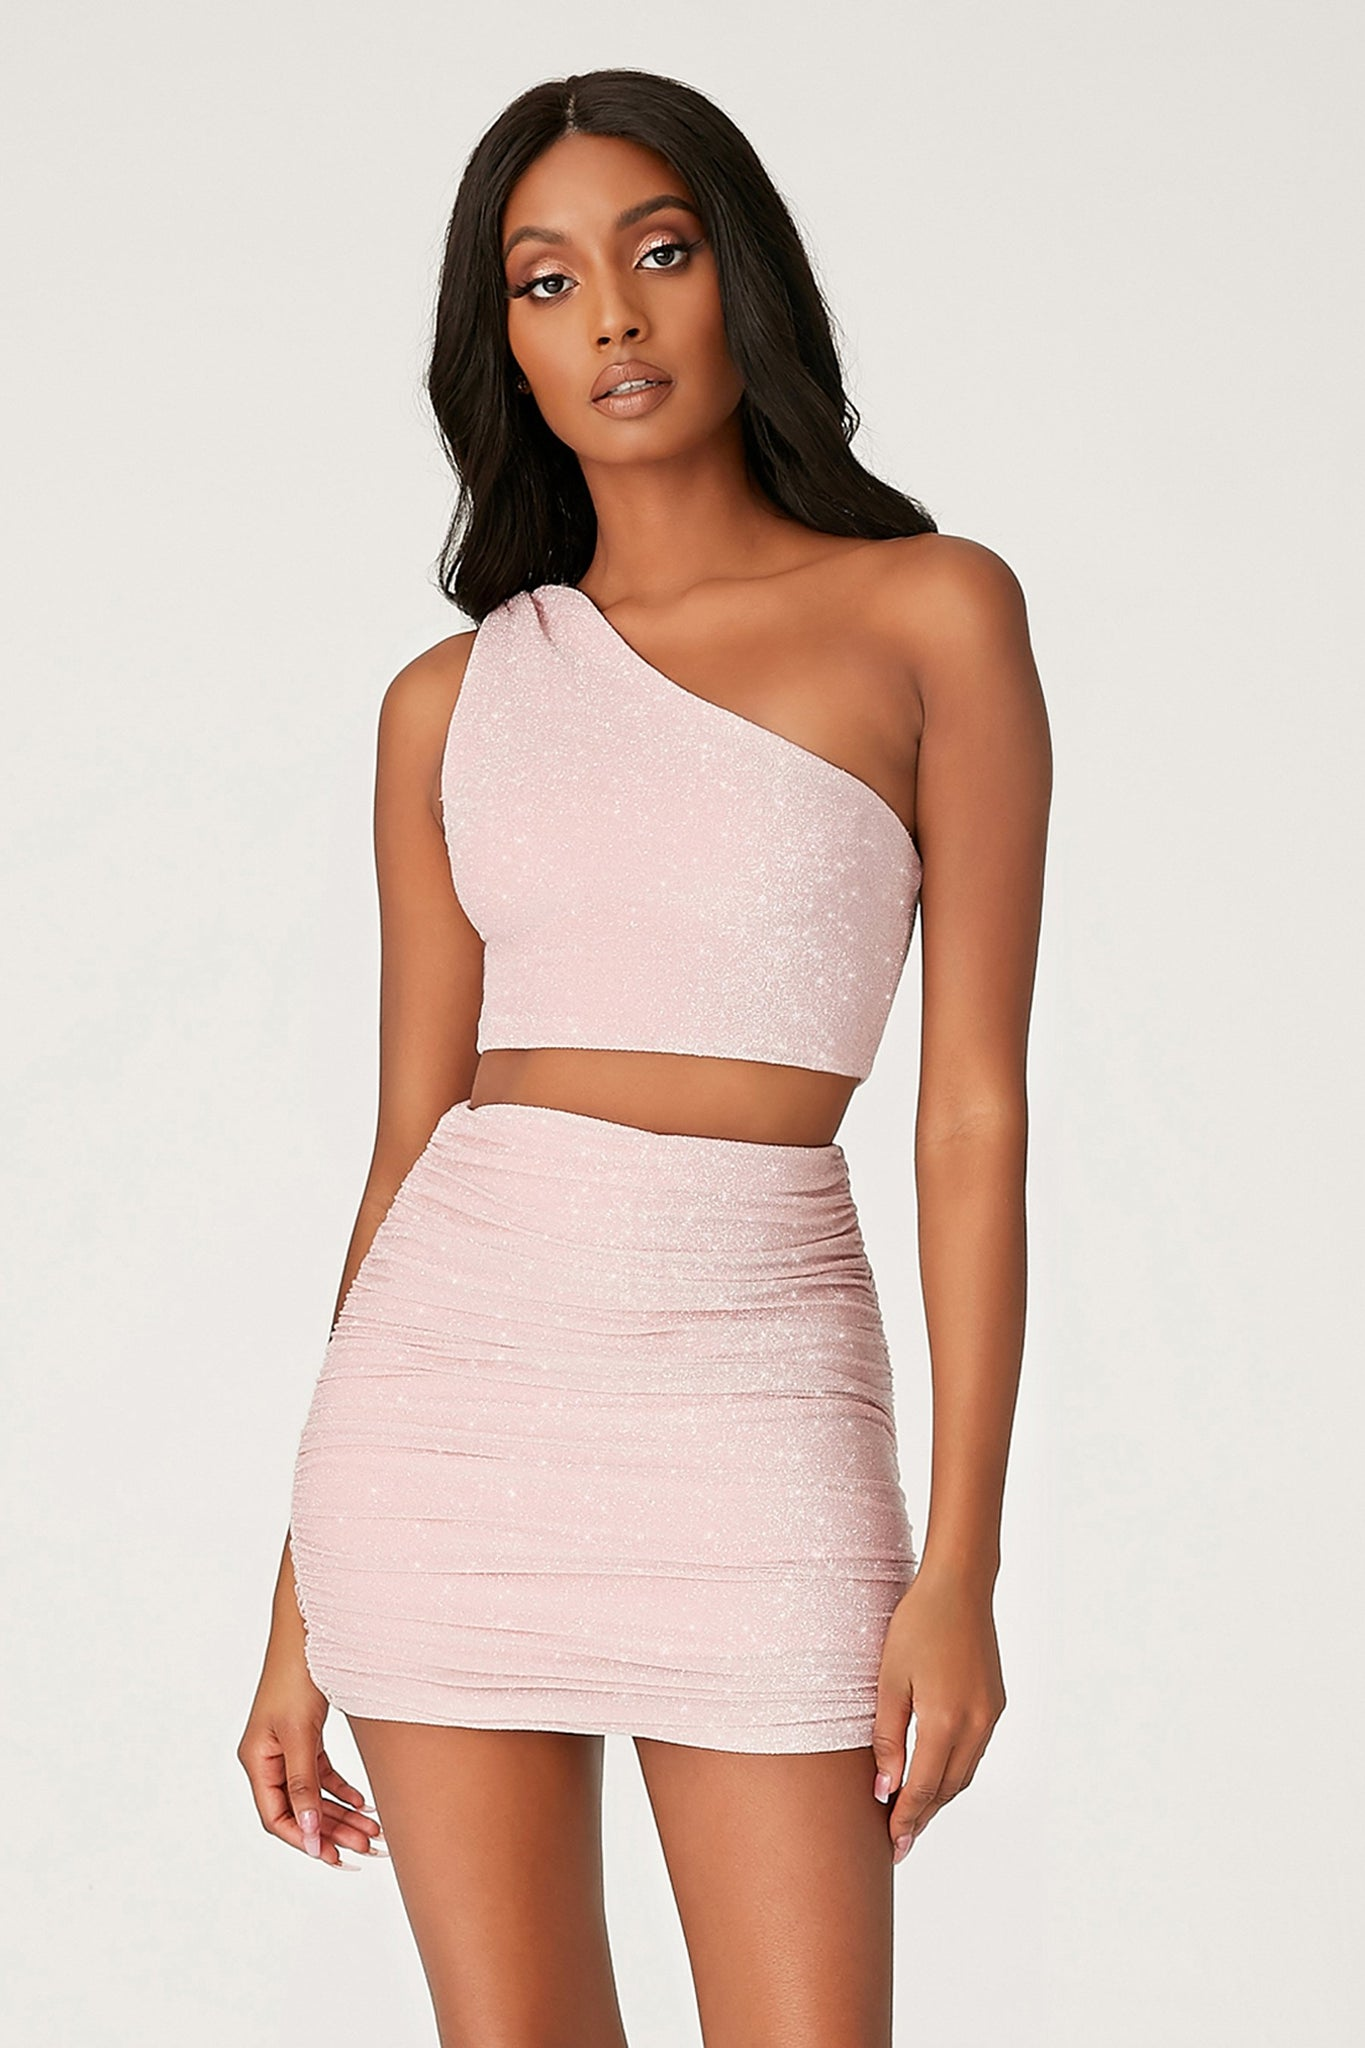 Lori One Shoulder Shimmer Crop Top - Pink - MESHKI